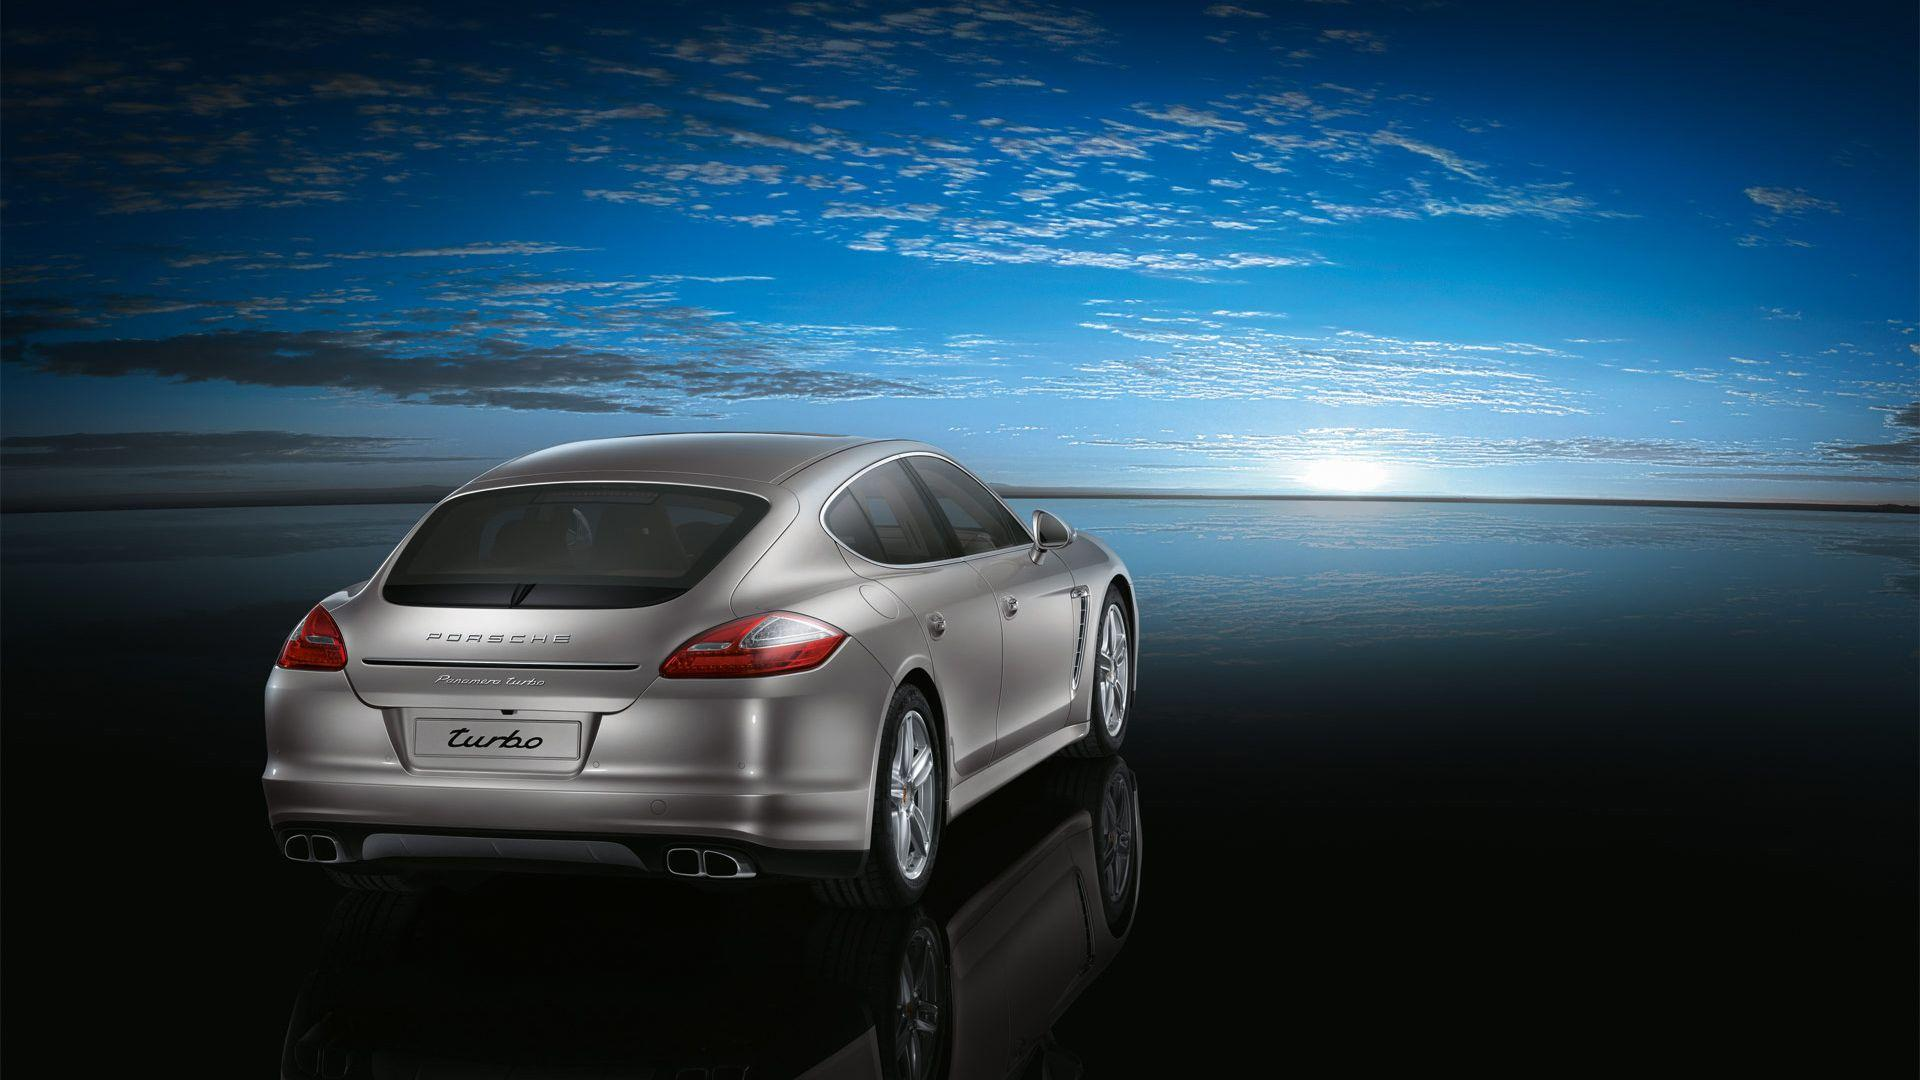 Porsche Panamera Turbo 2 Wallpapers | HD Wallpapers